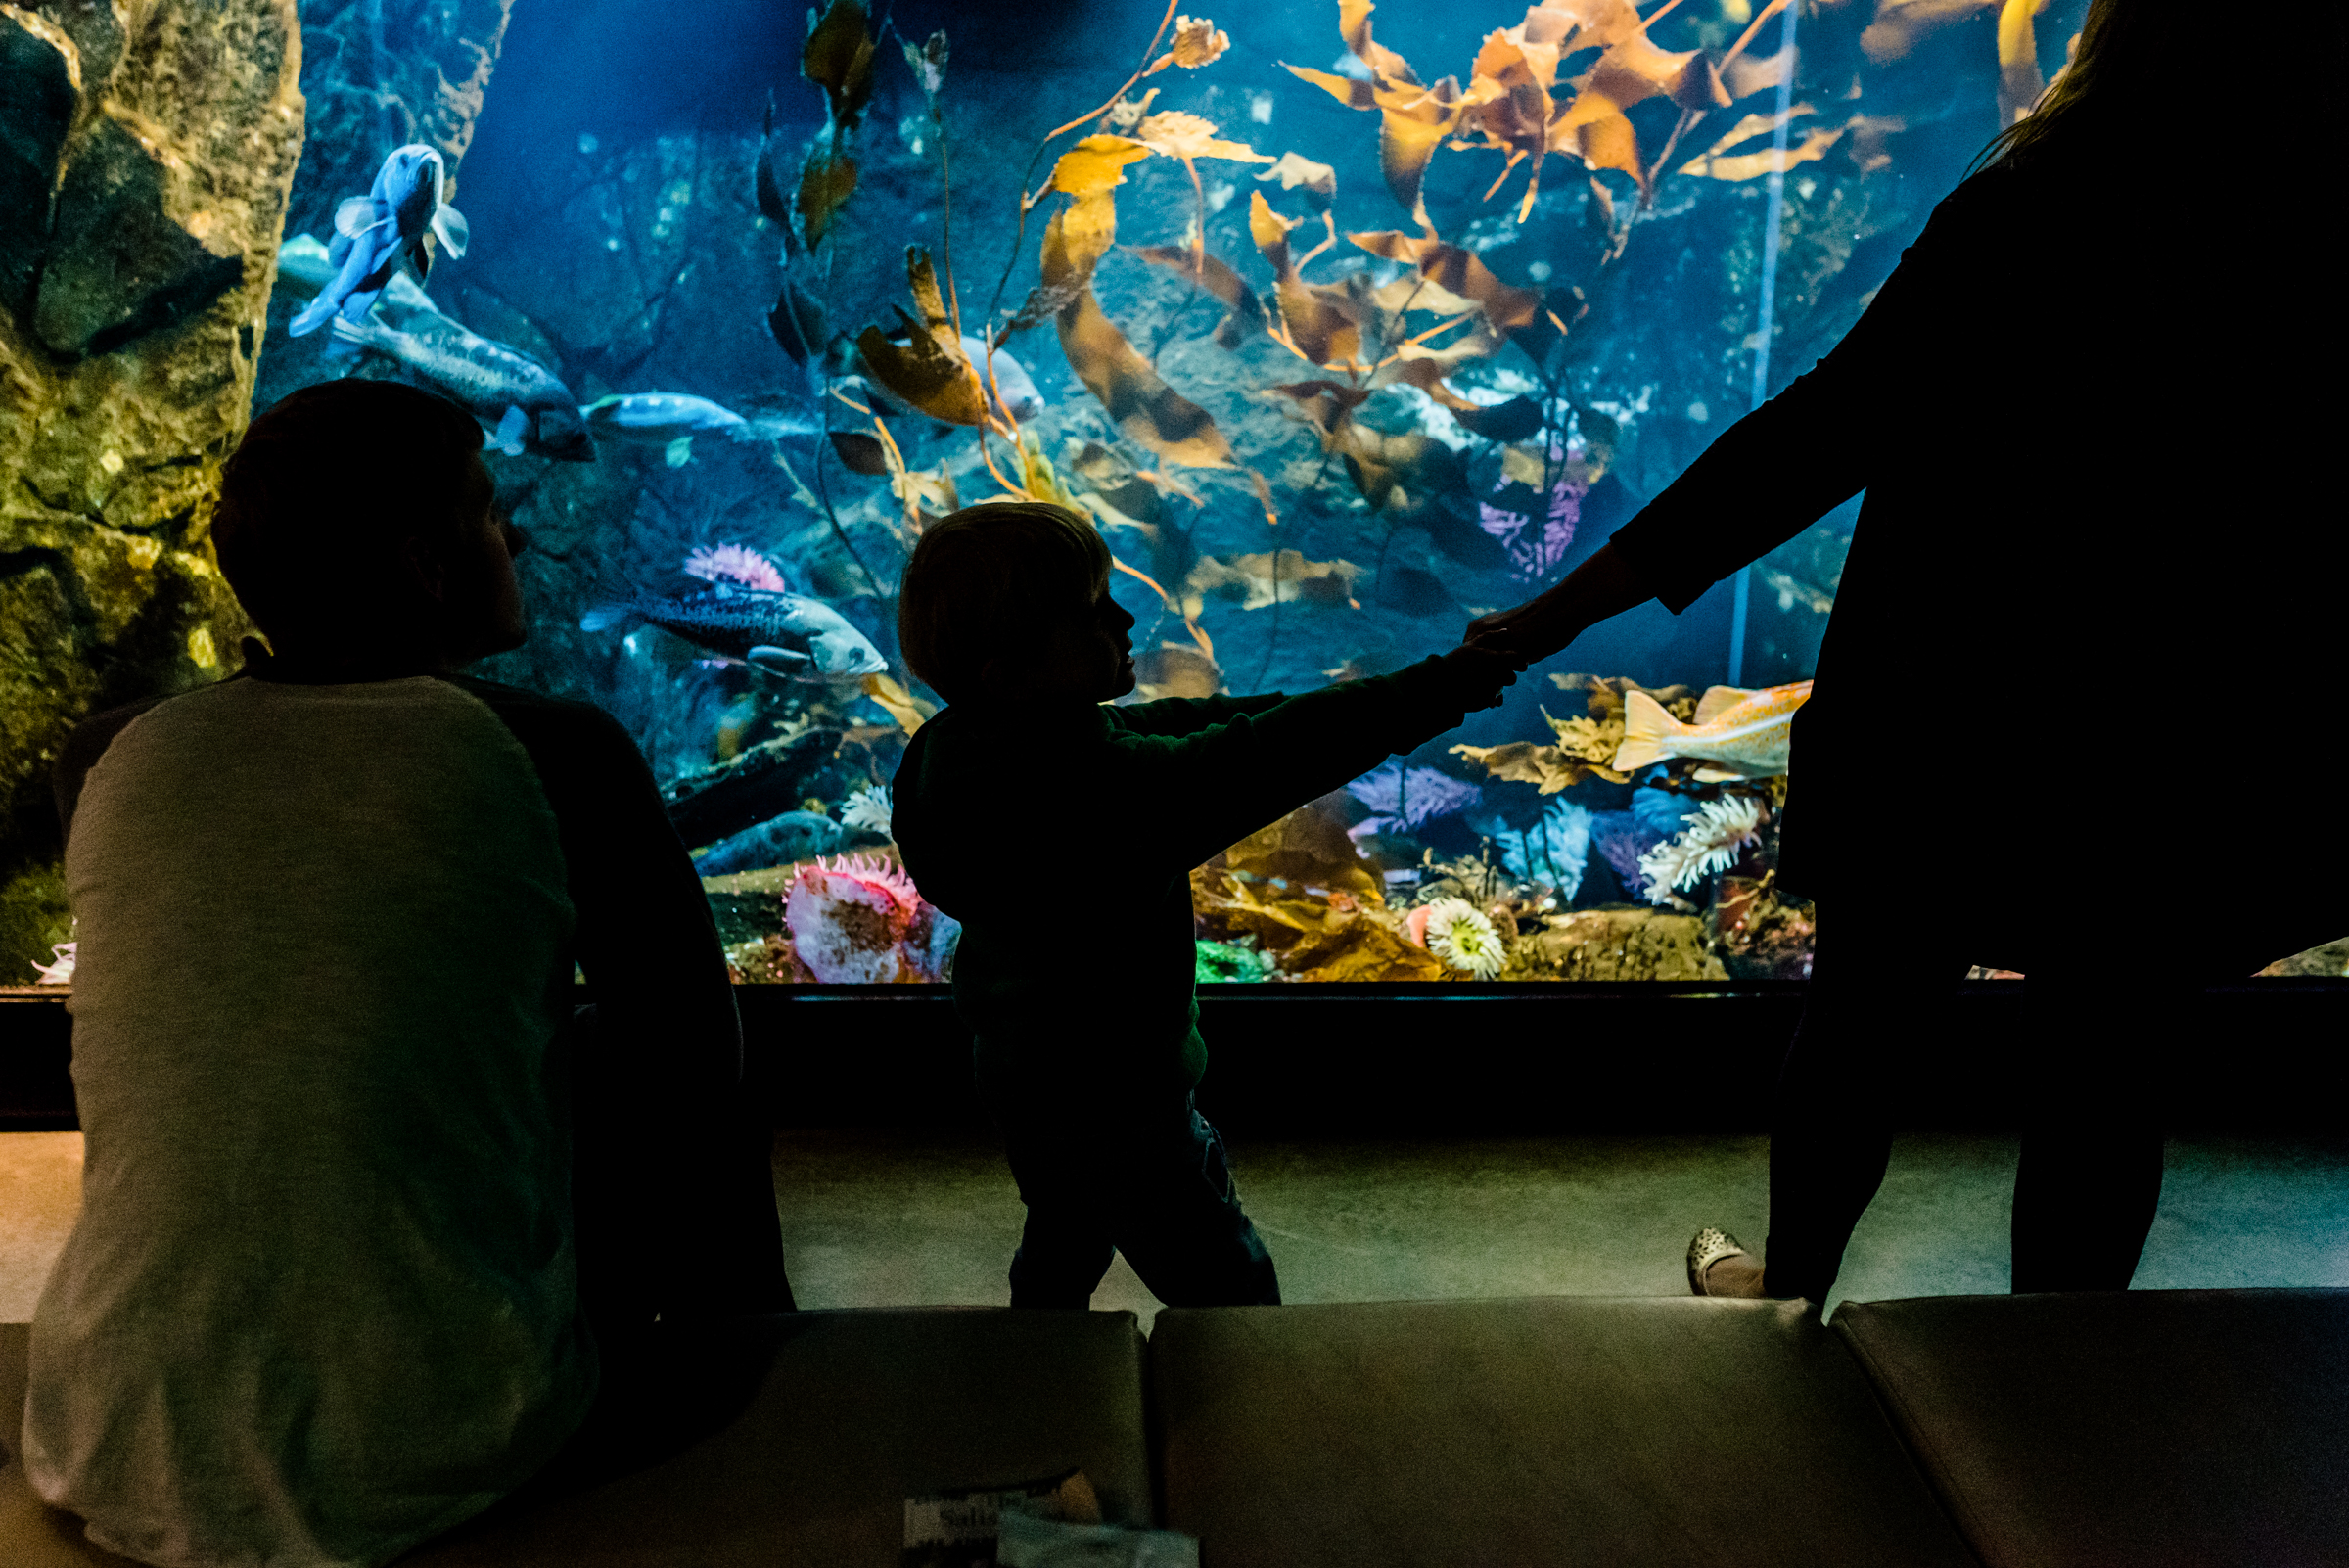 Nicola_Reiersen_Photography_Victoria_BC_Aquarium_Maternity_Session (100).jpg